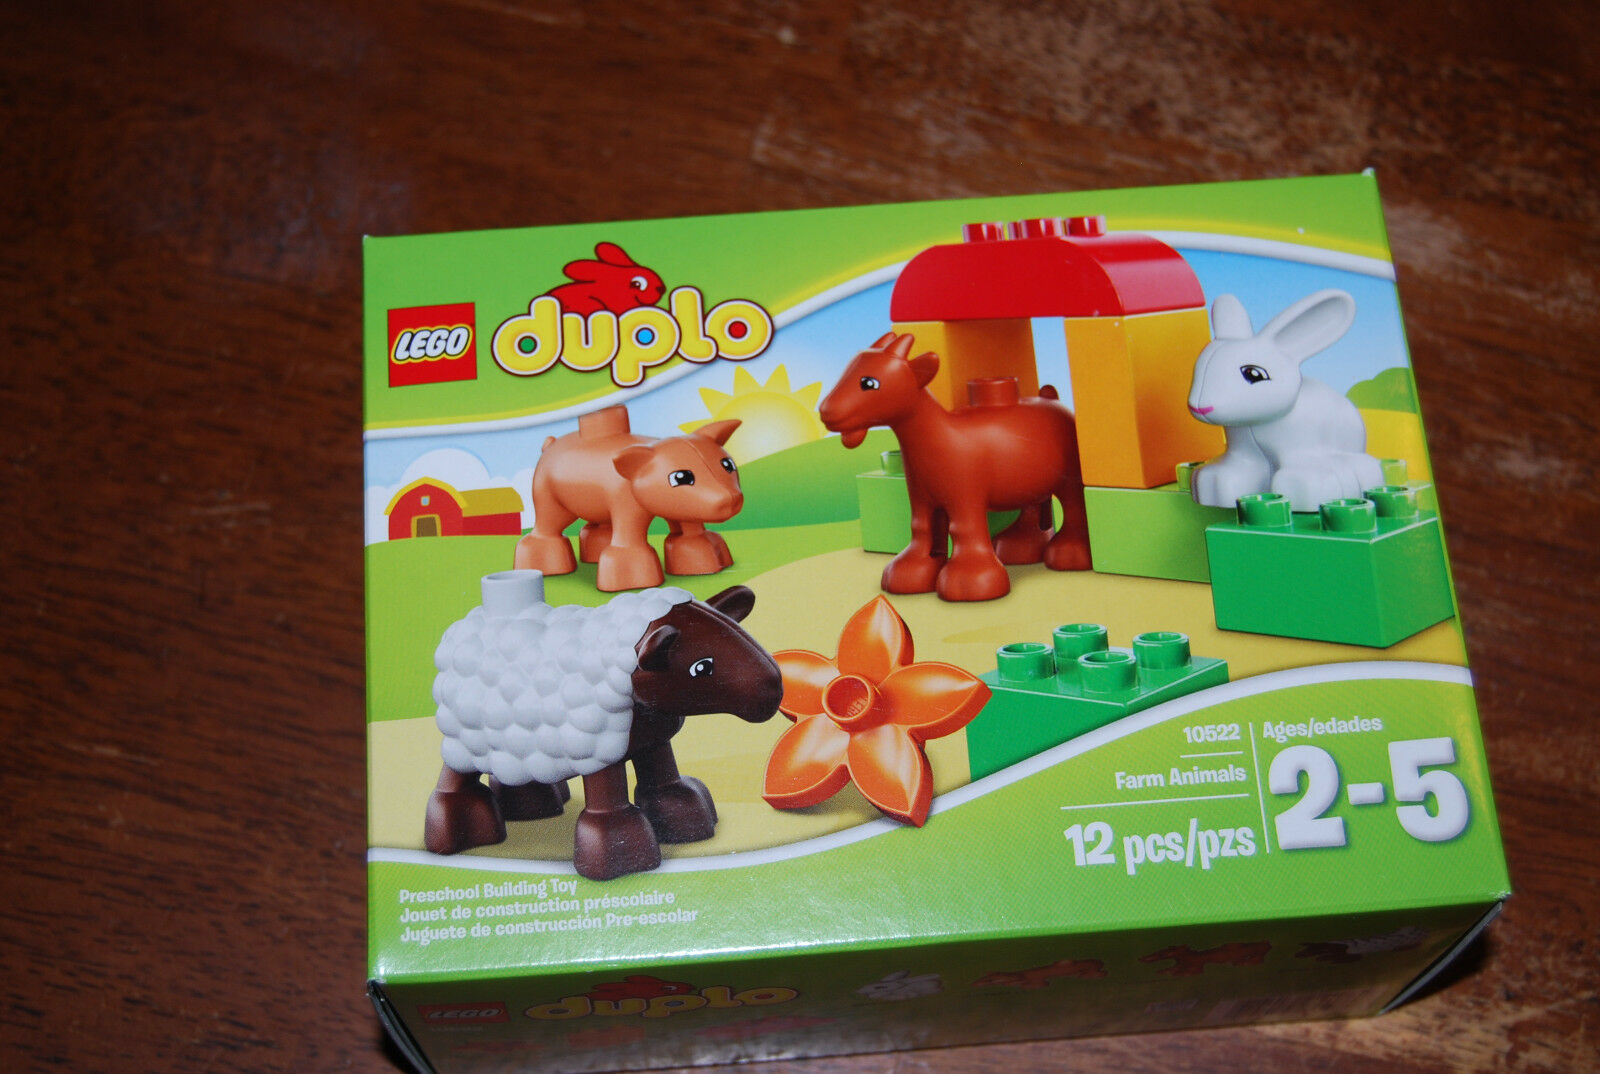 New Duplo Farm Animals Rare Retired HTF 10522 10522 10522 Factory Sealed 8a0d5d